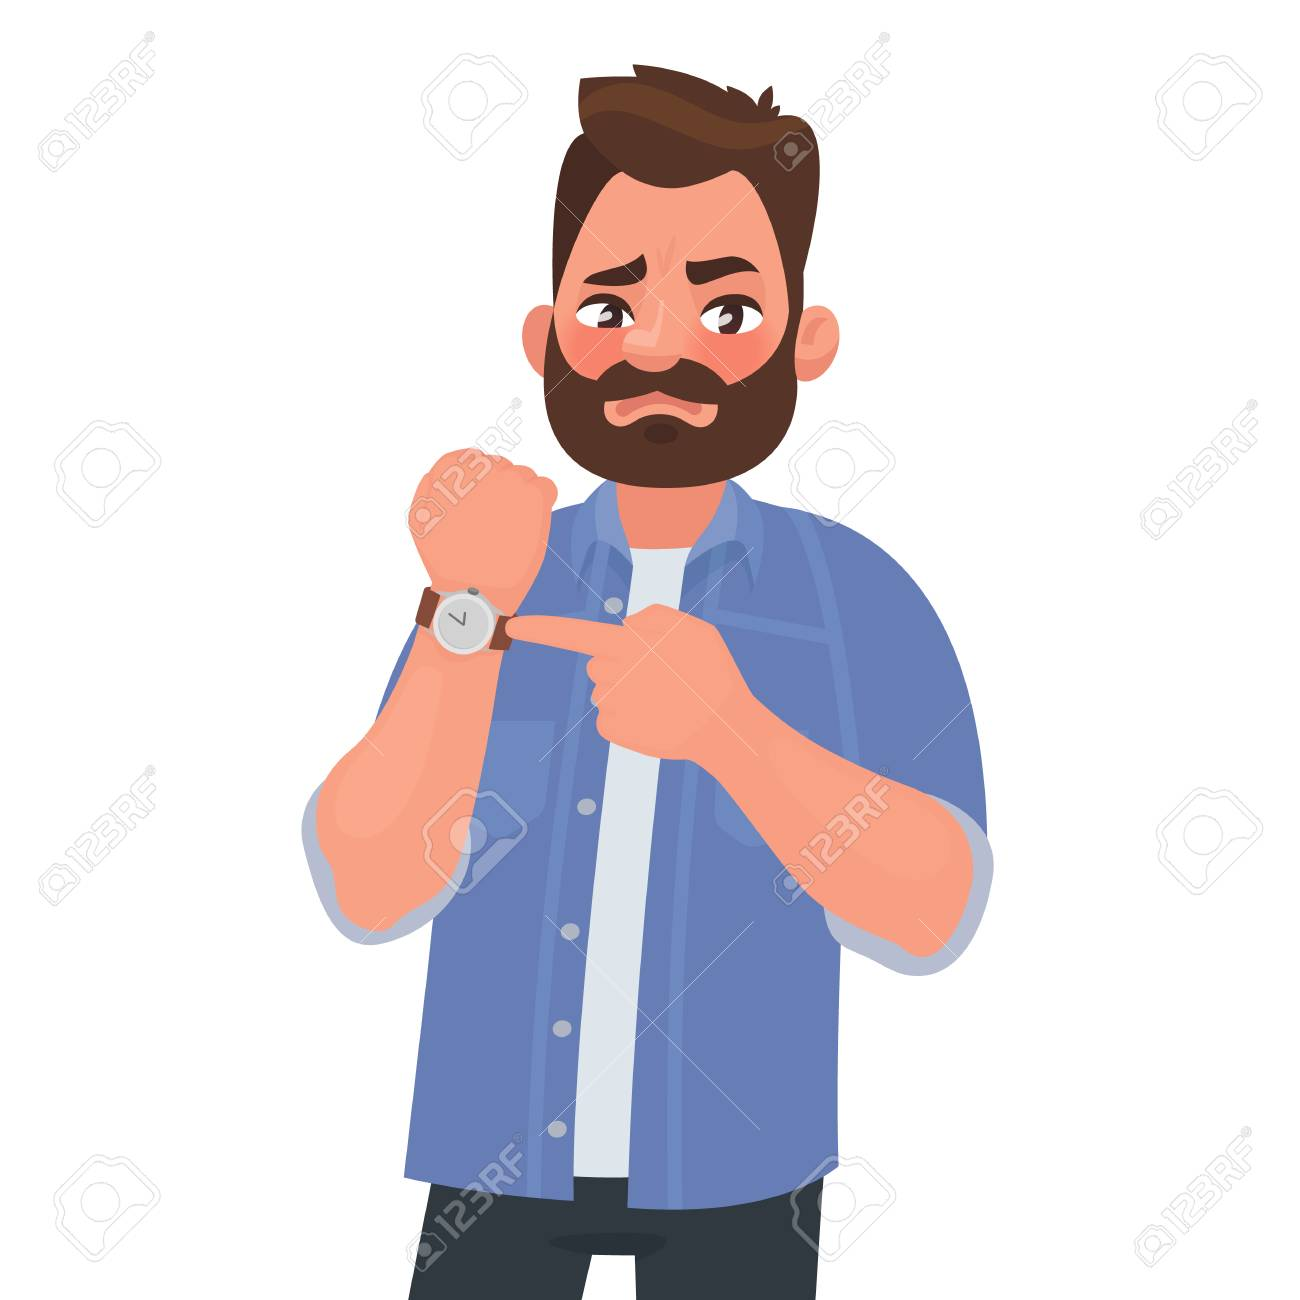 Dissatisfied man shows on the clock. Hurry up. Deadline. Impatient boss. Vector illustration in cartoon style - 122945277